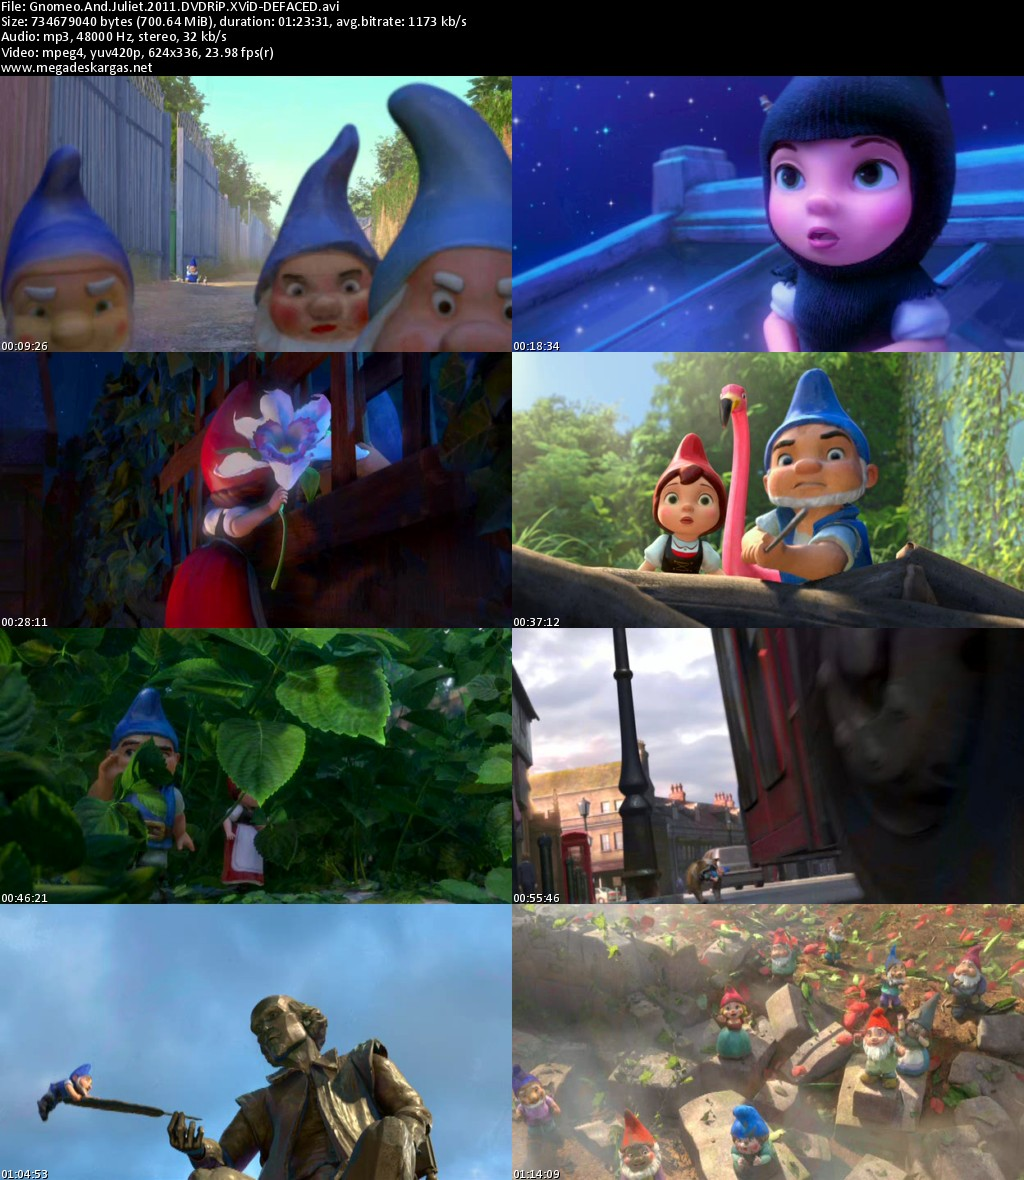 romeo and juliet vs gnomeo and Romeo and juliet loved each other very much but it was impossible to bring all these variables under control their choices weren't necessarily free will because it all boiled down to one option and it was most of the time something crazy.